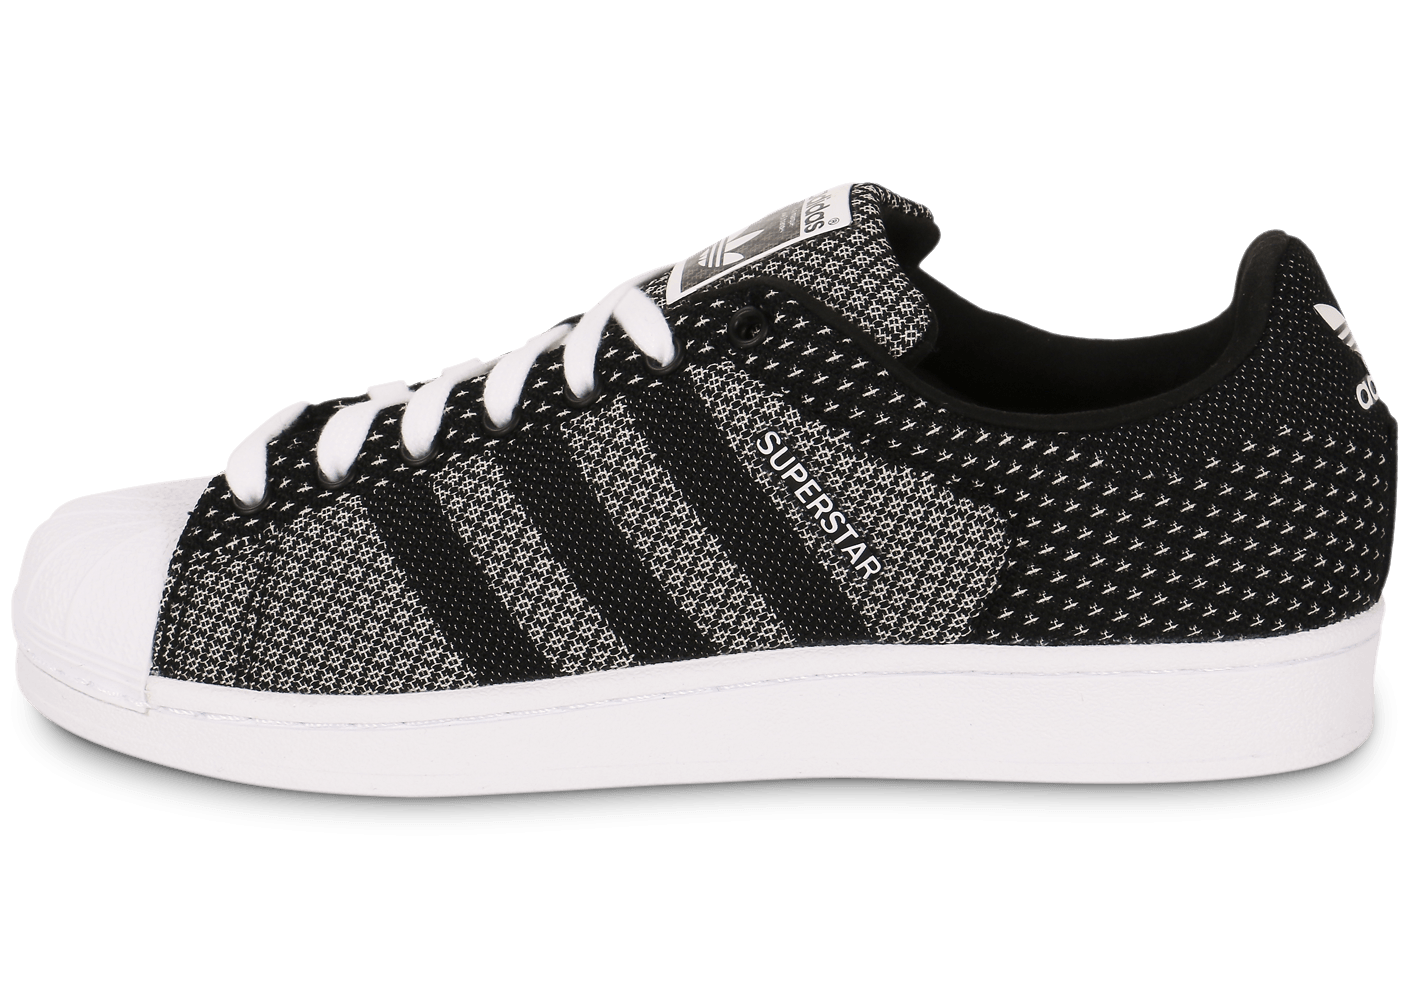 adidas superstar weave noire chaussures homme chausport. Black Bedroom Furniture Sets. Home Design Ideas